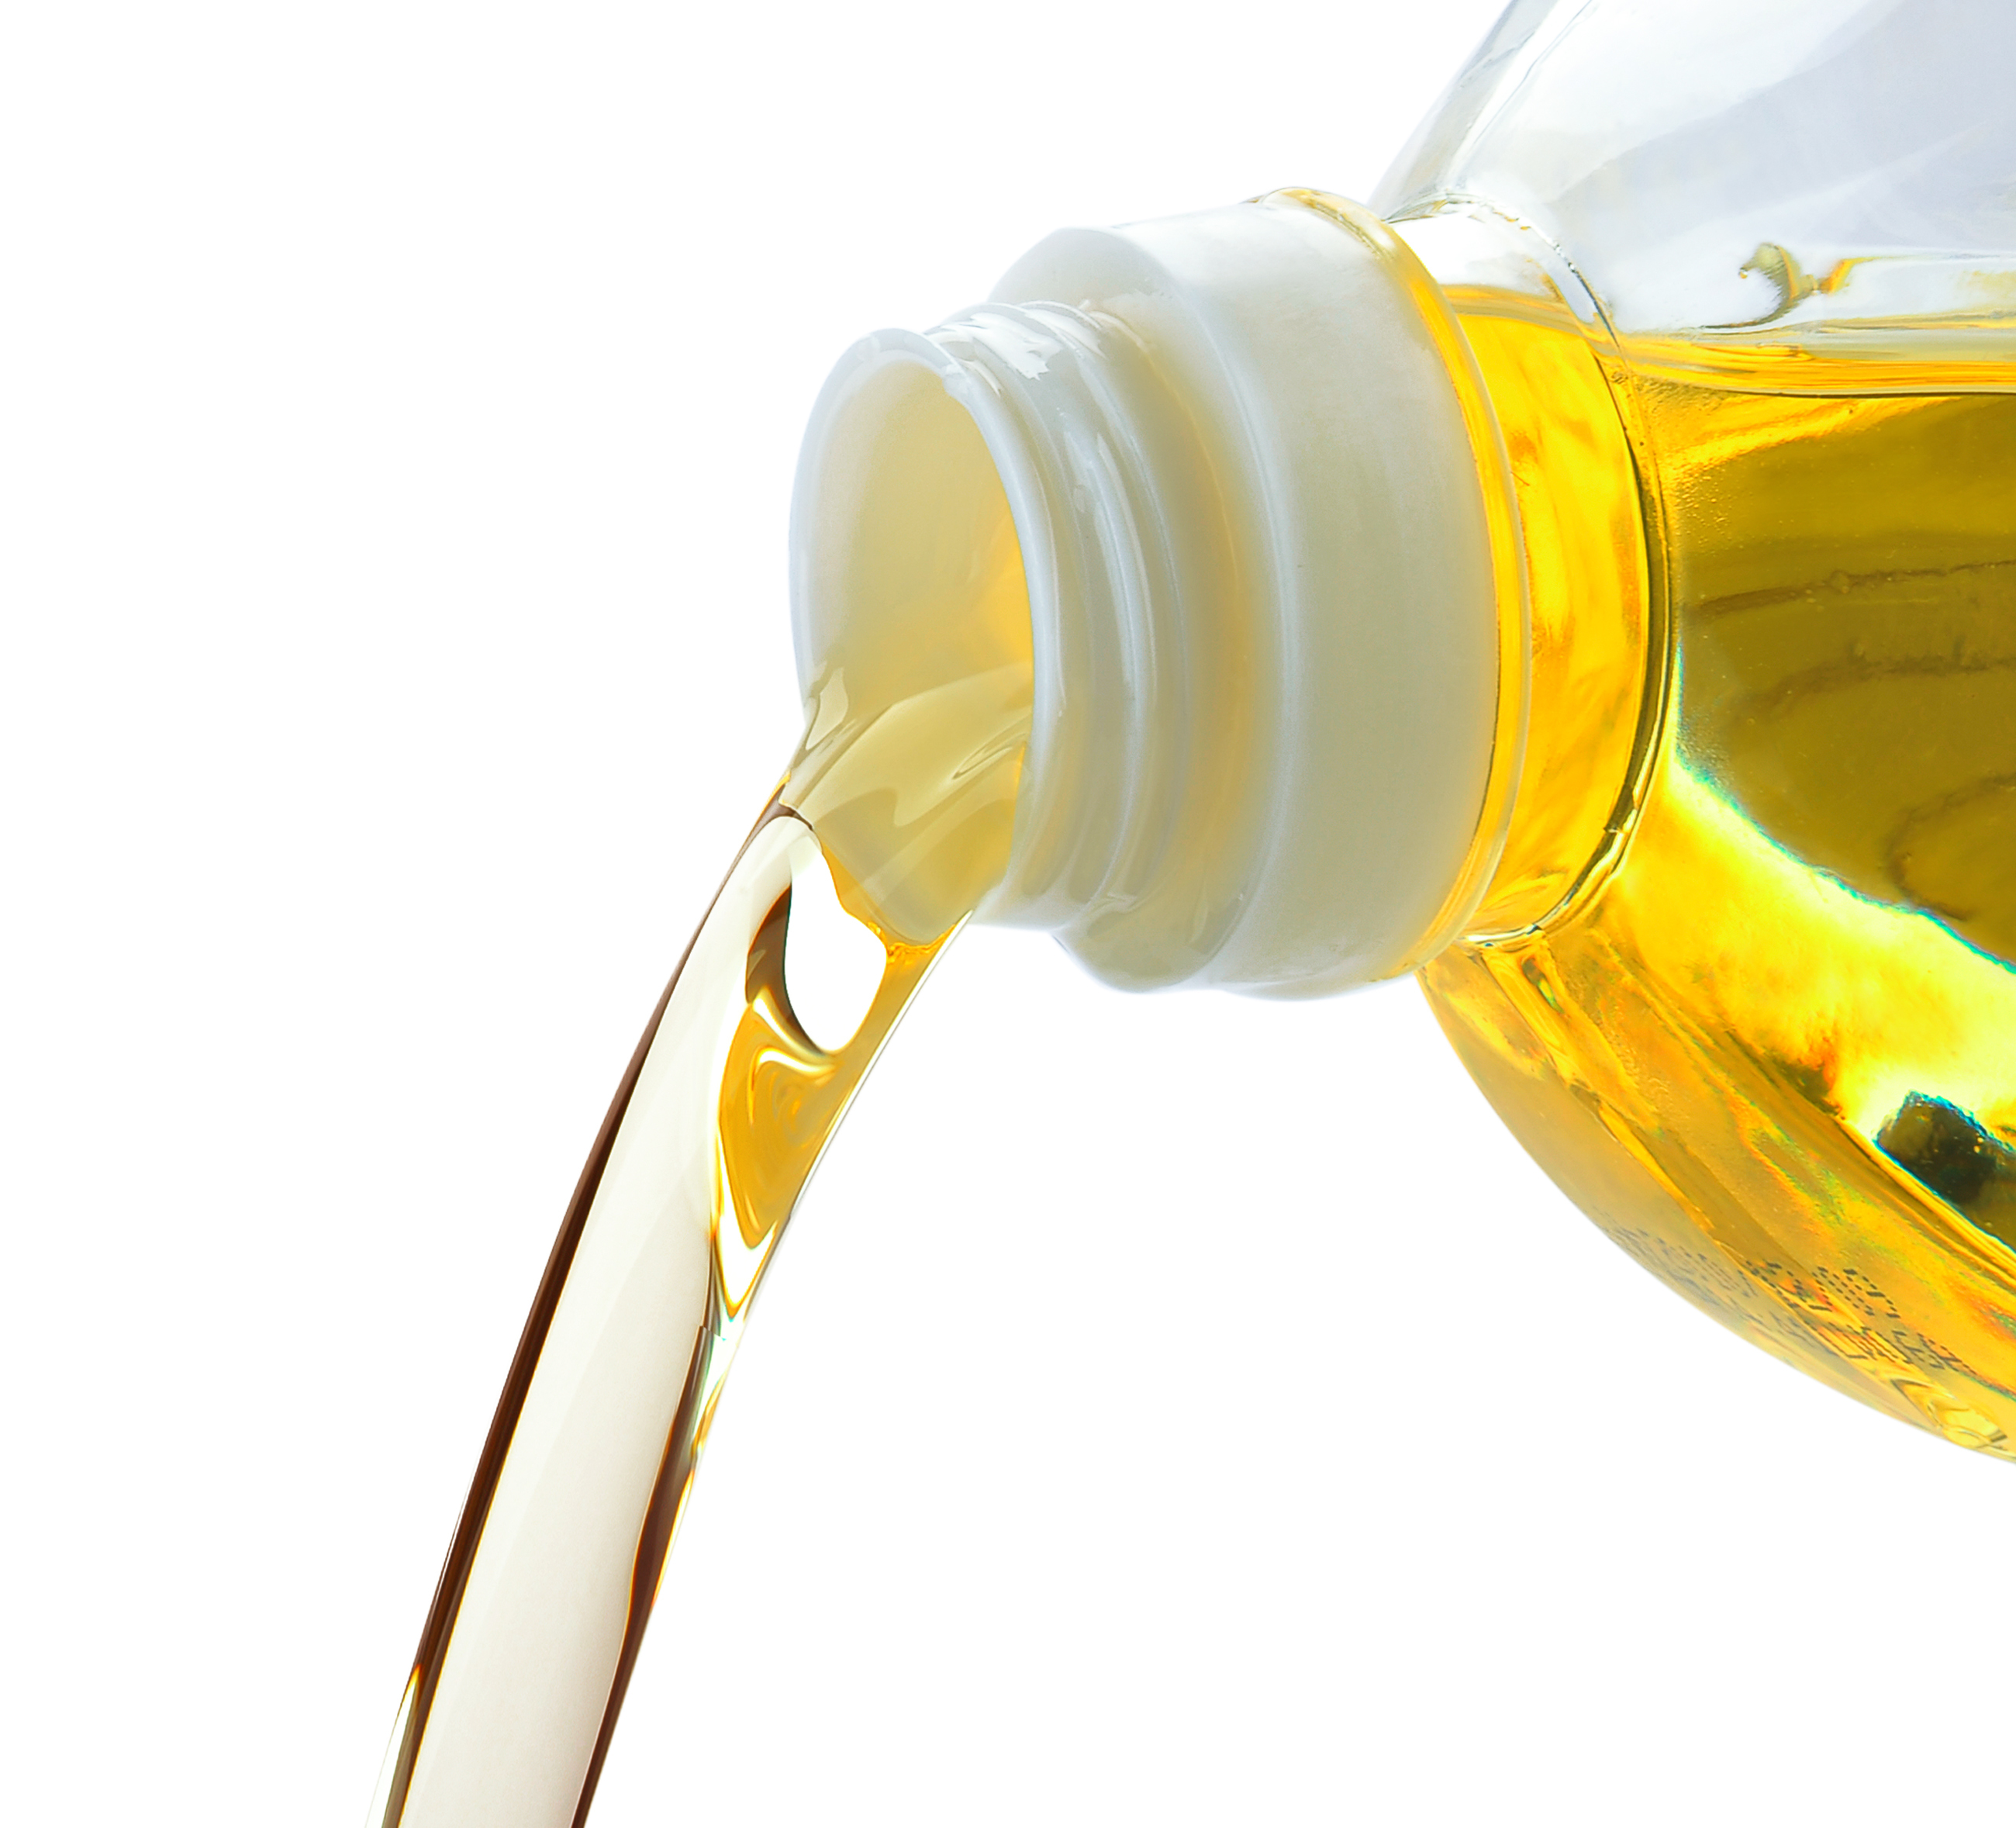 Vitamin E In Canola And Other Cooking Oils Linked To